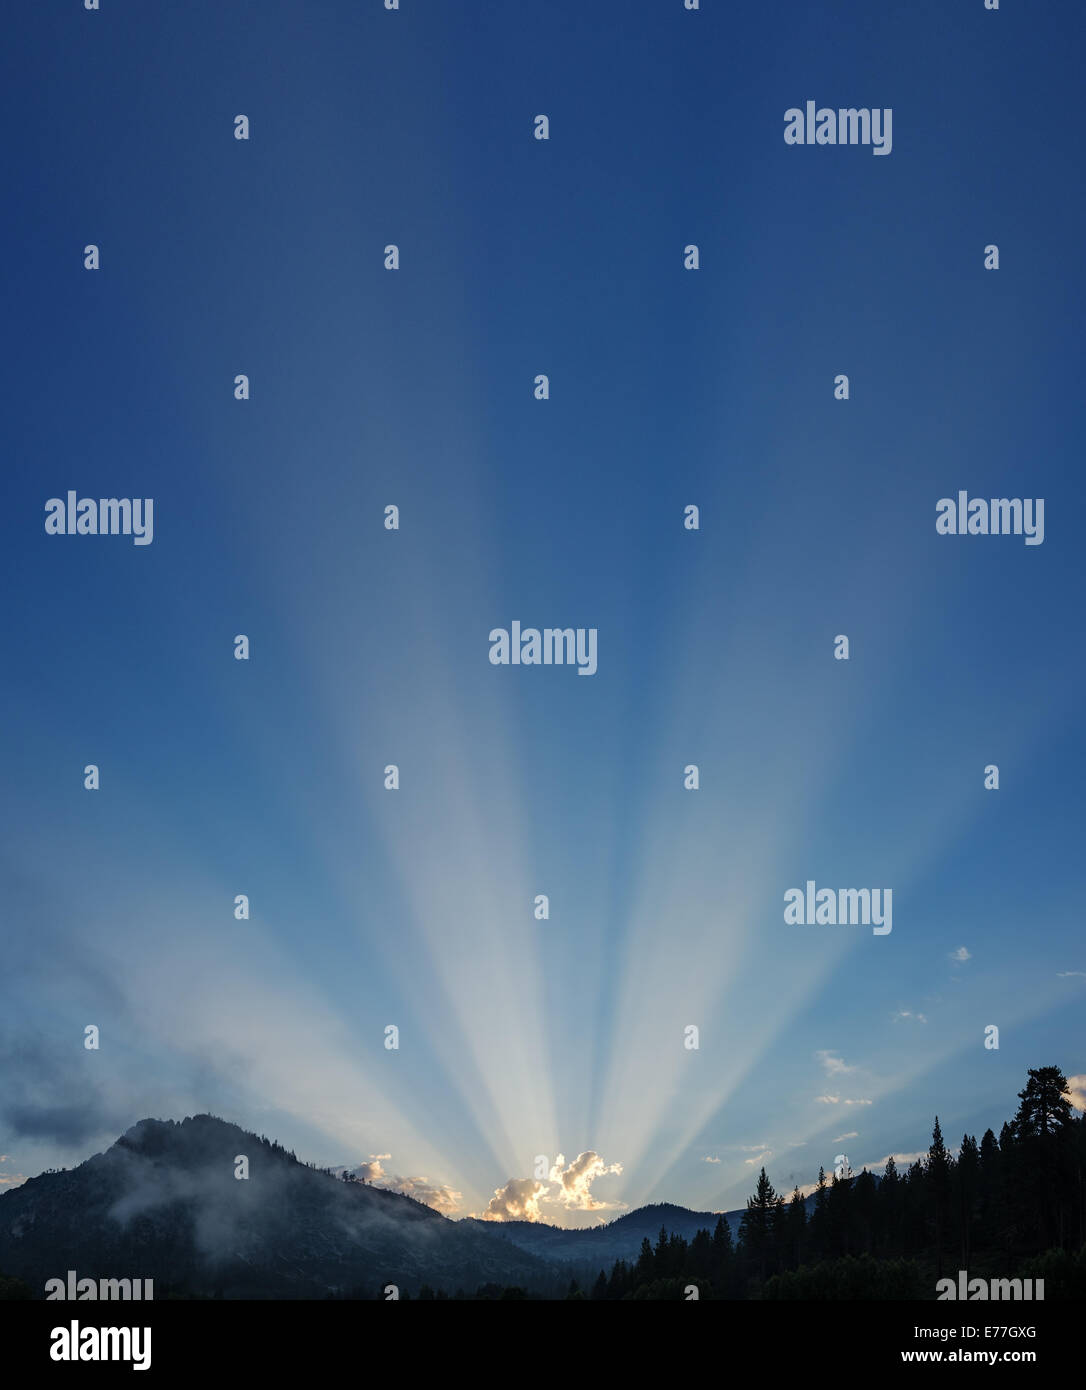 sunrays shine out across the sky over Sierra Nevada mountains - Stock Image